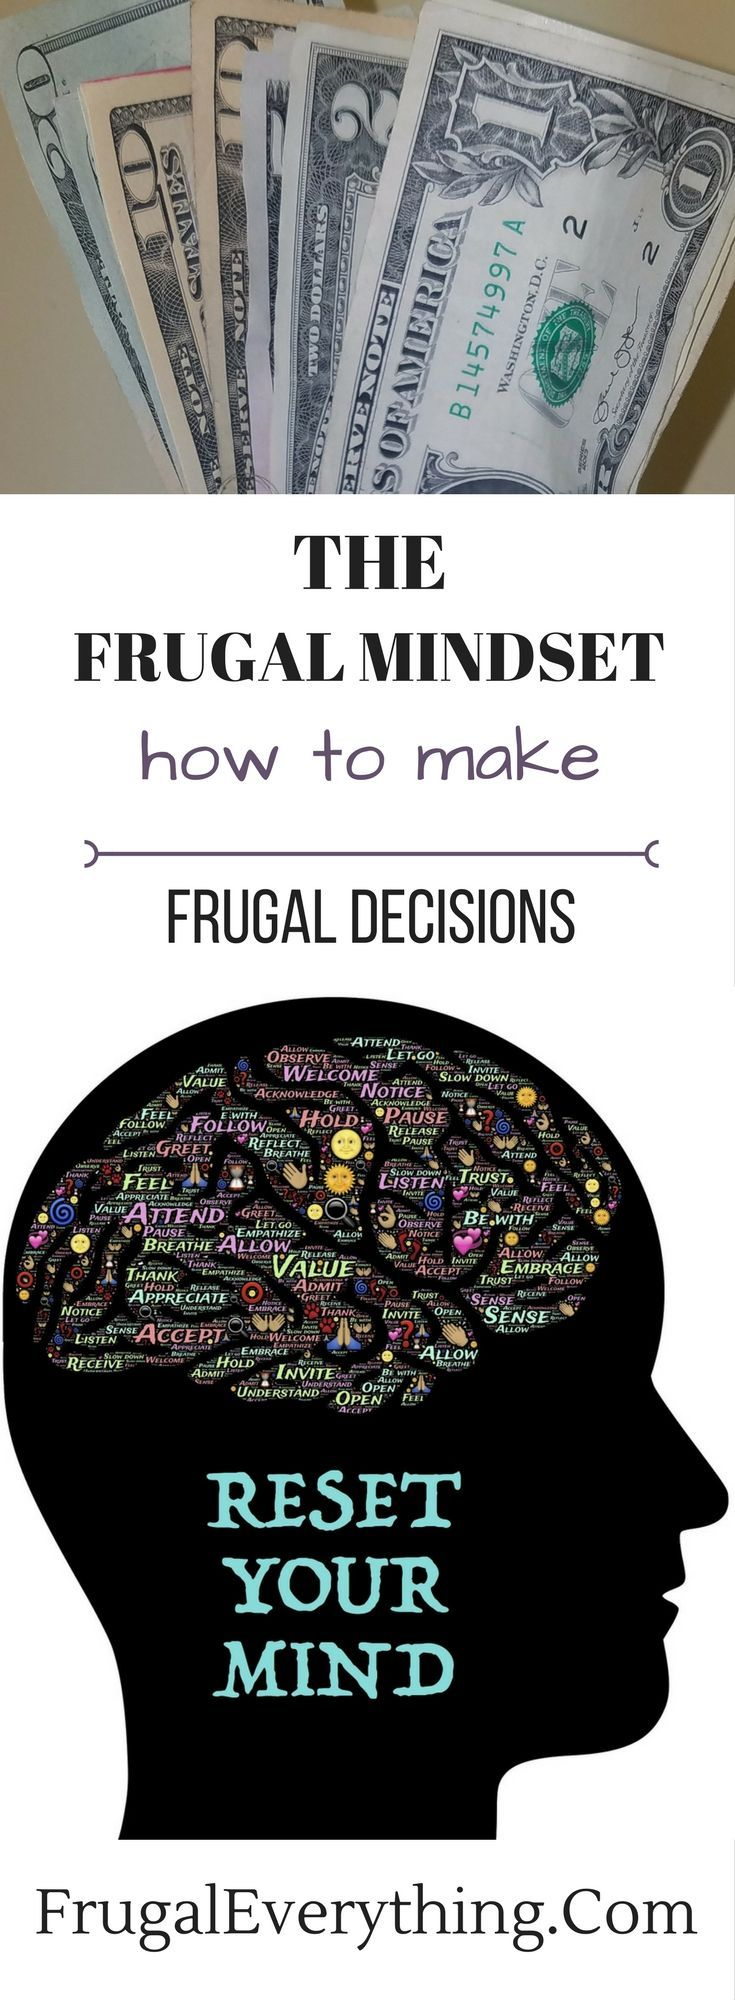 The best way to become frugal is to change the way your mindset from a consumer mindset to a frugal mindset.